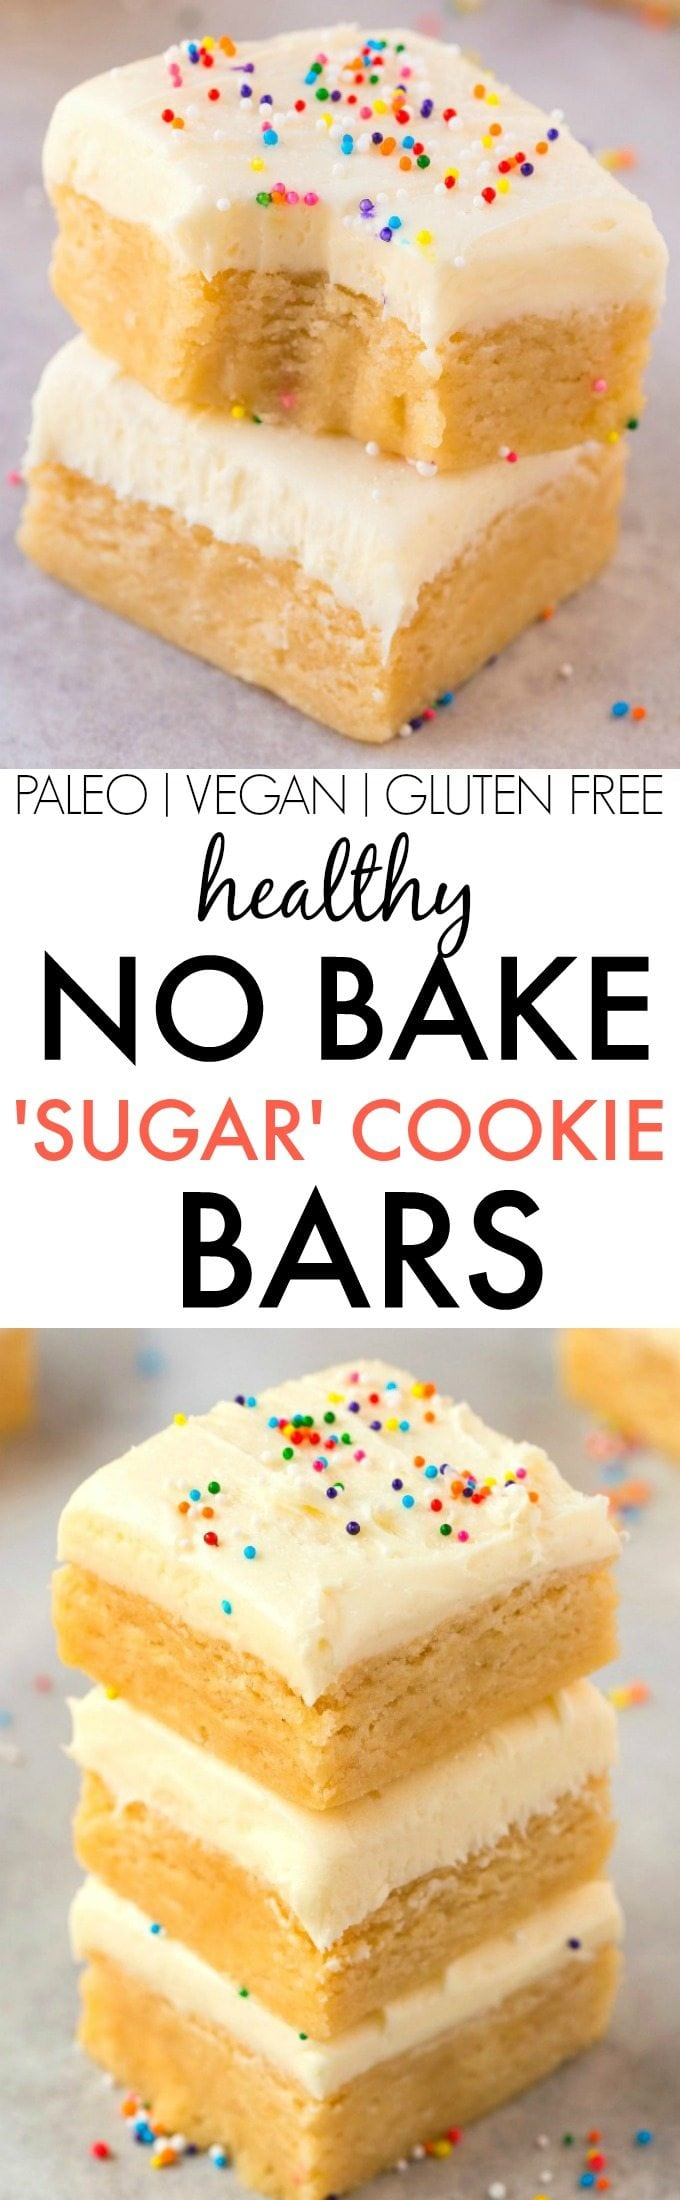 Healthy No Bake Sugar Cookie Bars